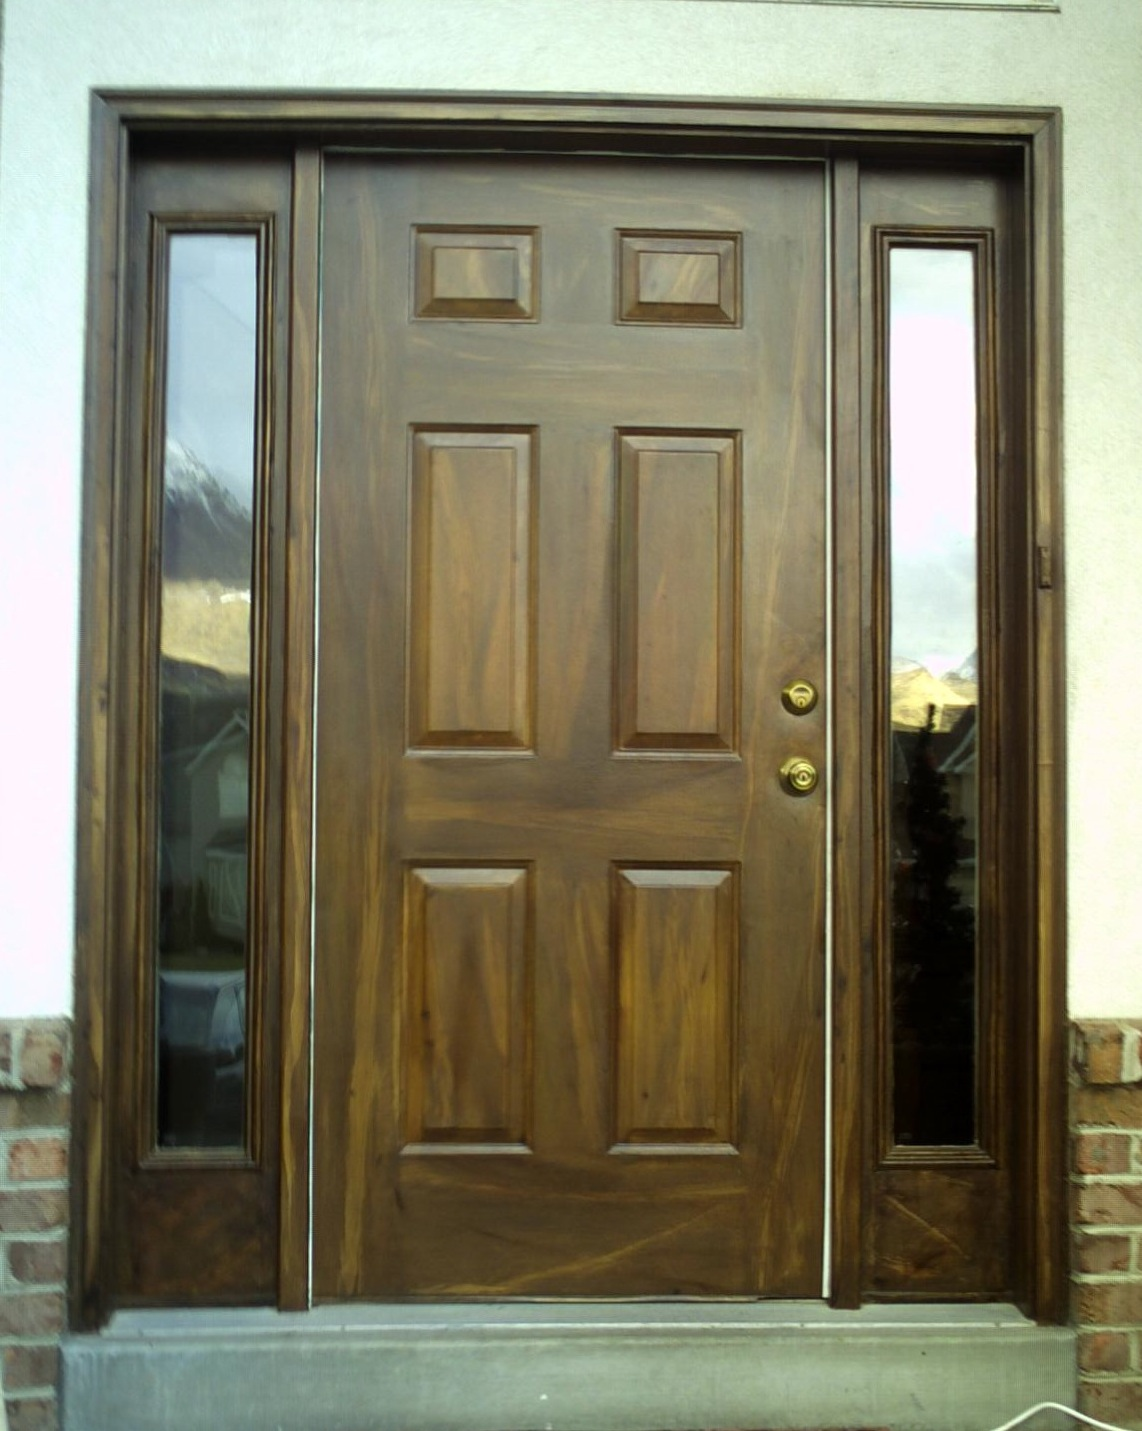 Garage And Front Doors That Match Matching Woodgrained Entrance Garage Doors